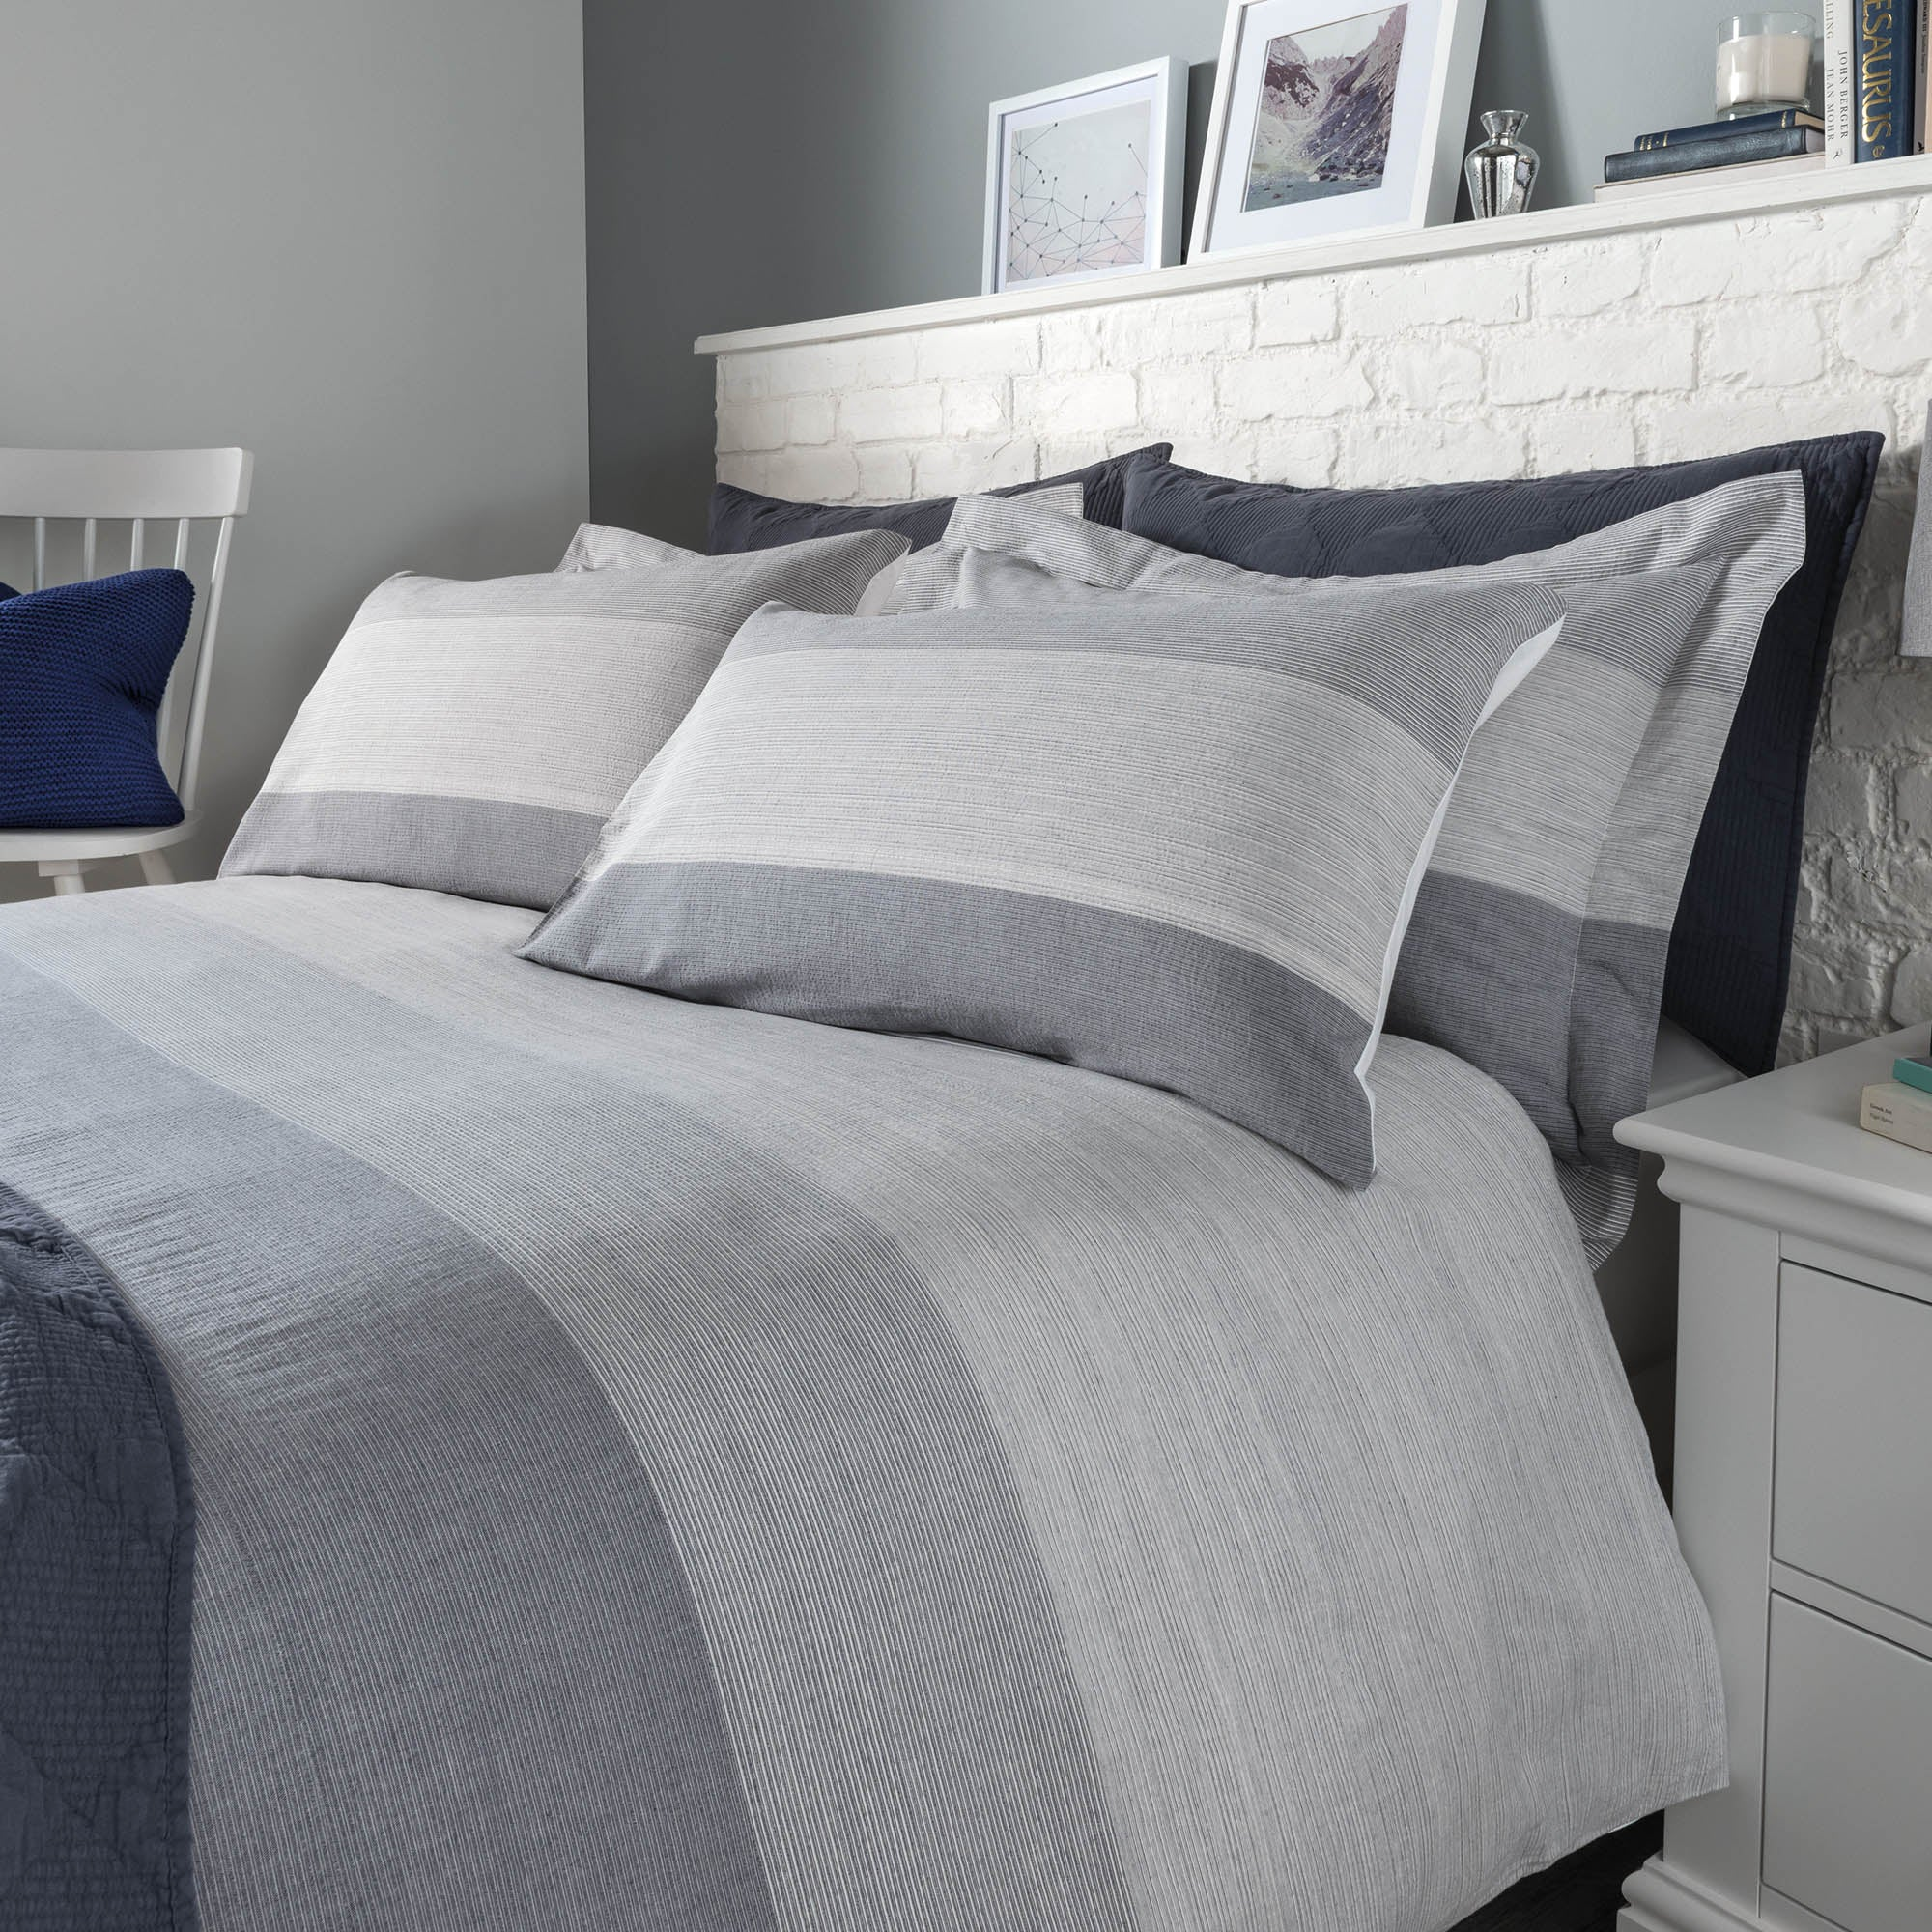 Wentworth Blue Bed Linen Collection